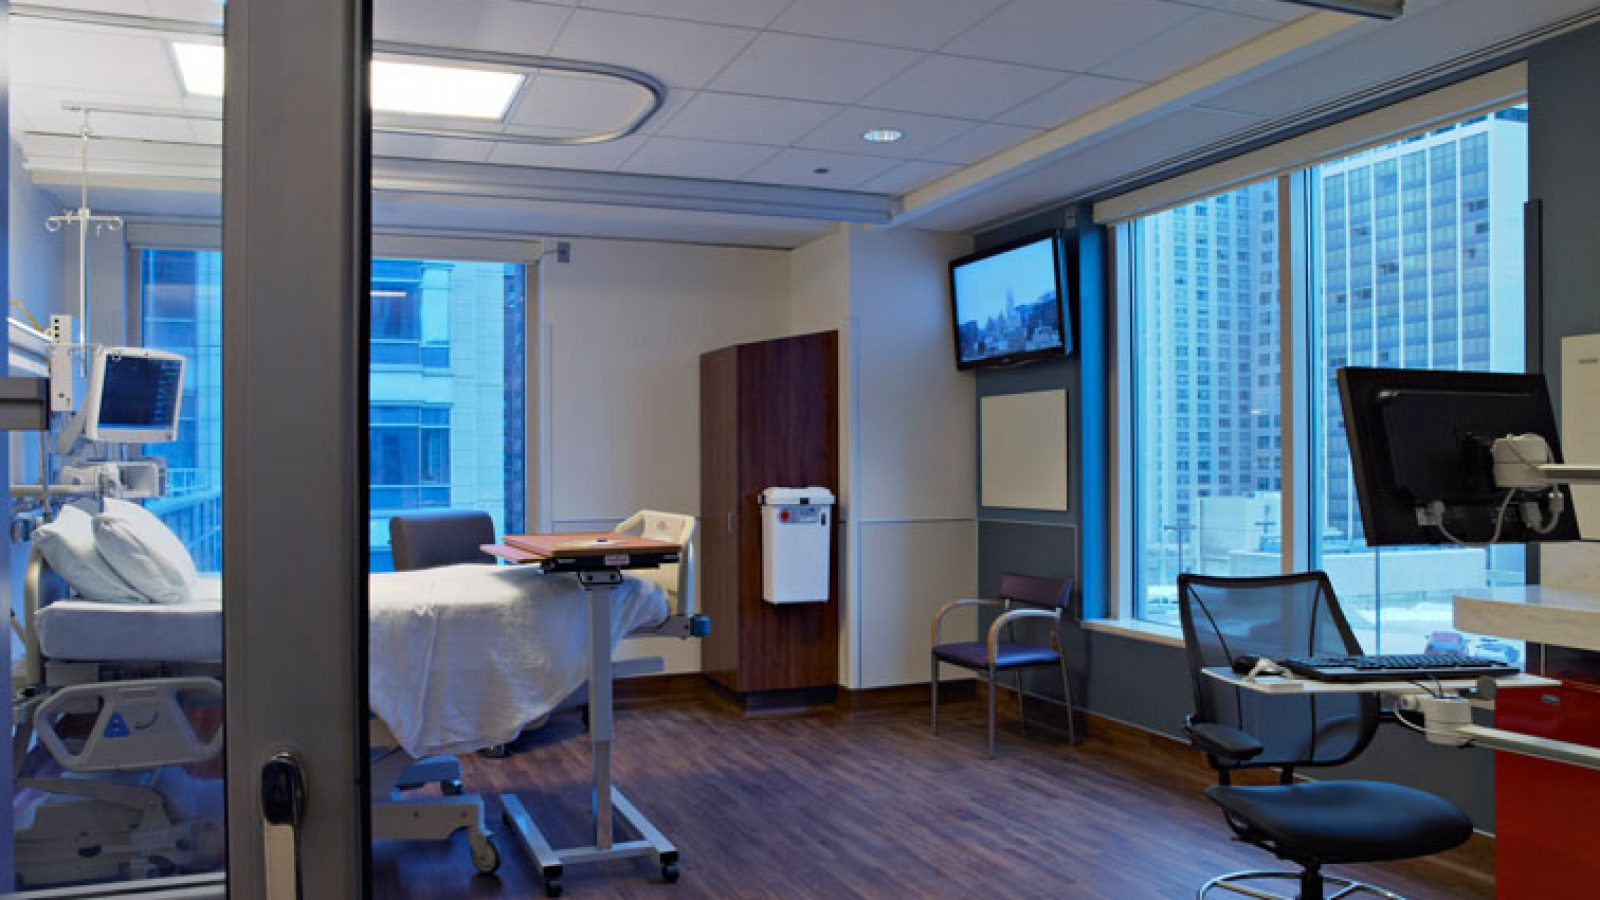 Northwestern Memorial Hospital Intensive Care Units, Chicago